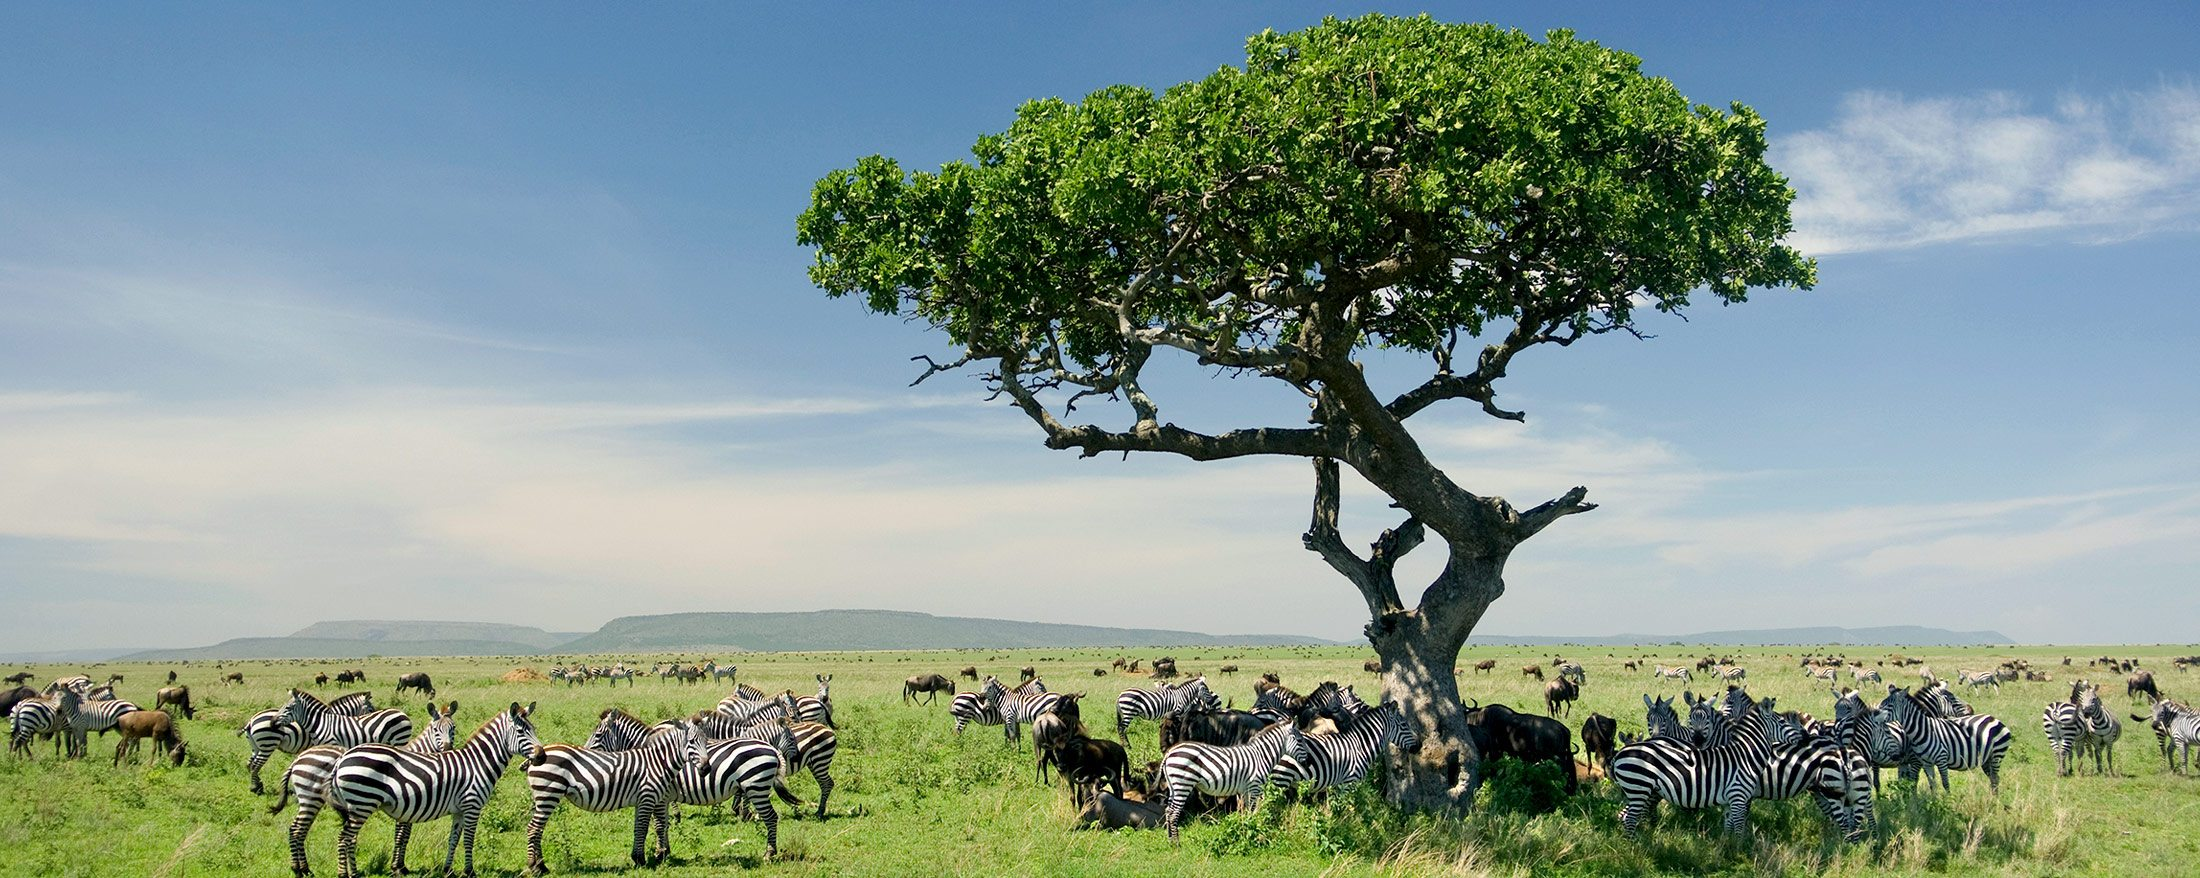 Tanzania is the perfect stage for both epic natural events and intimate shared moments.